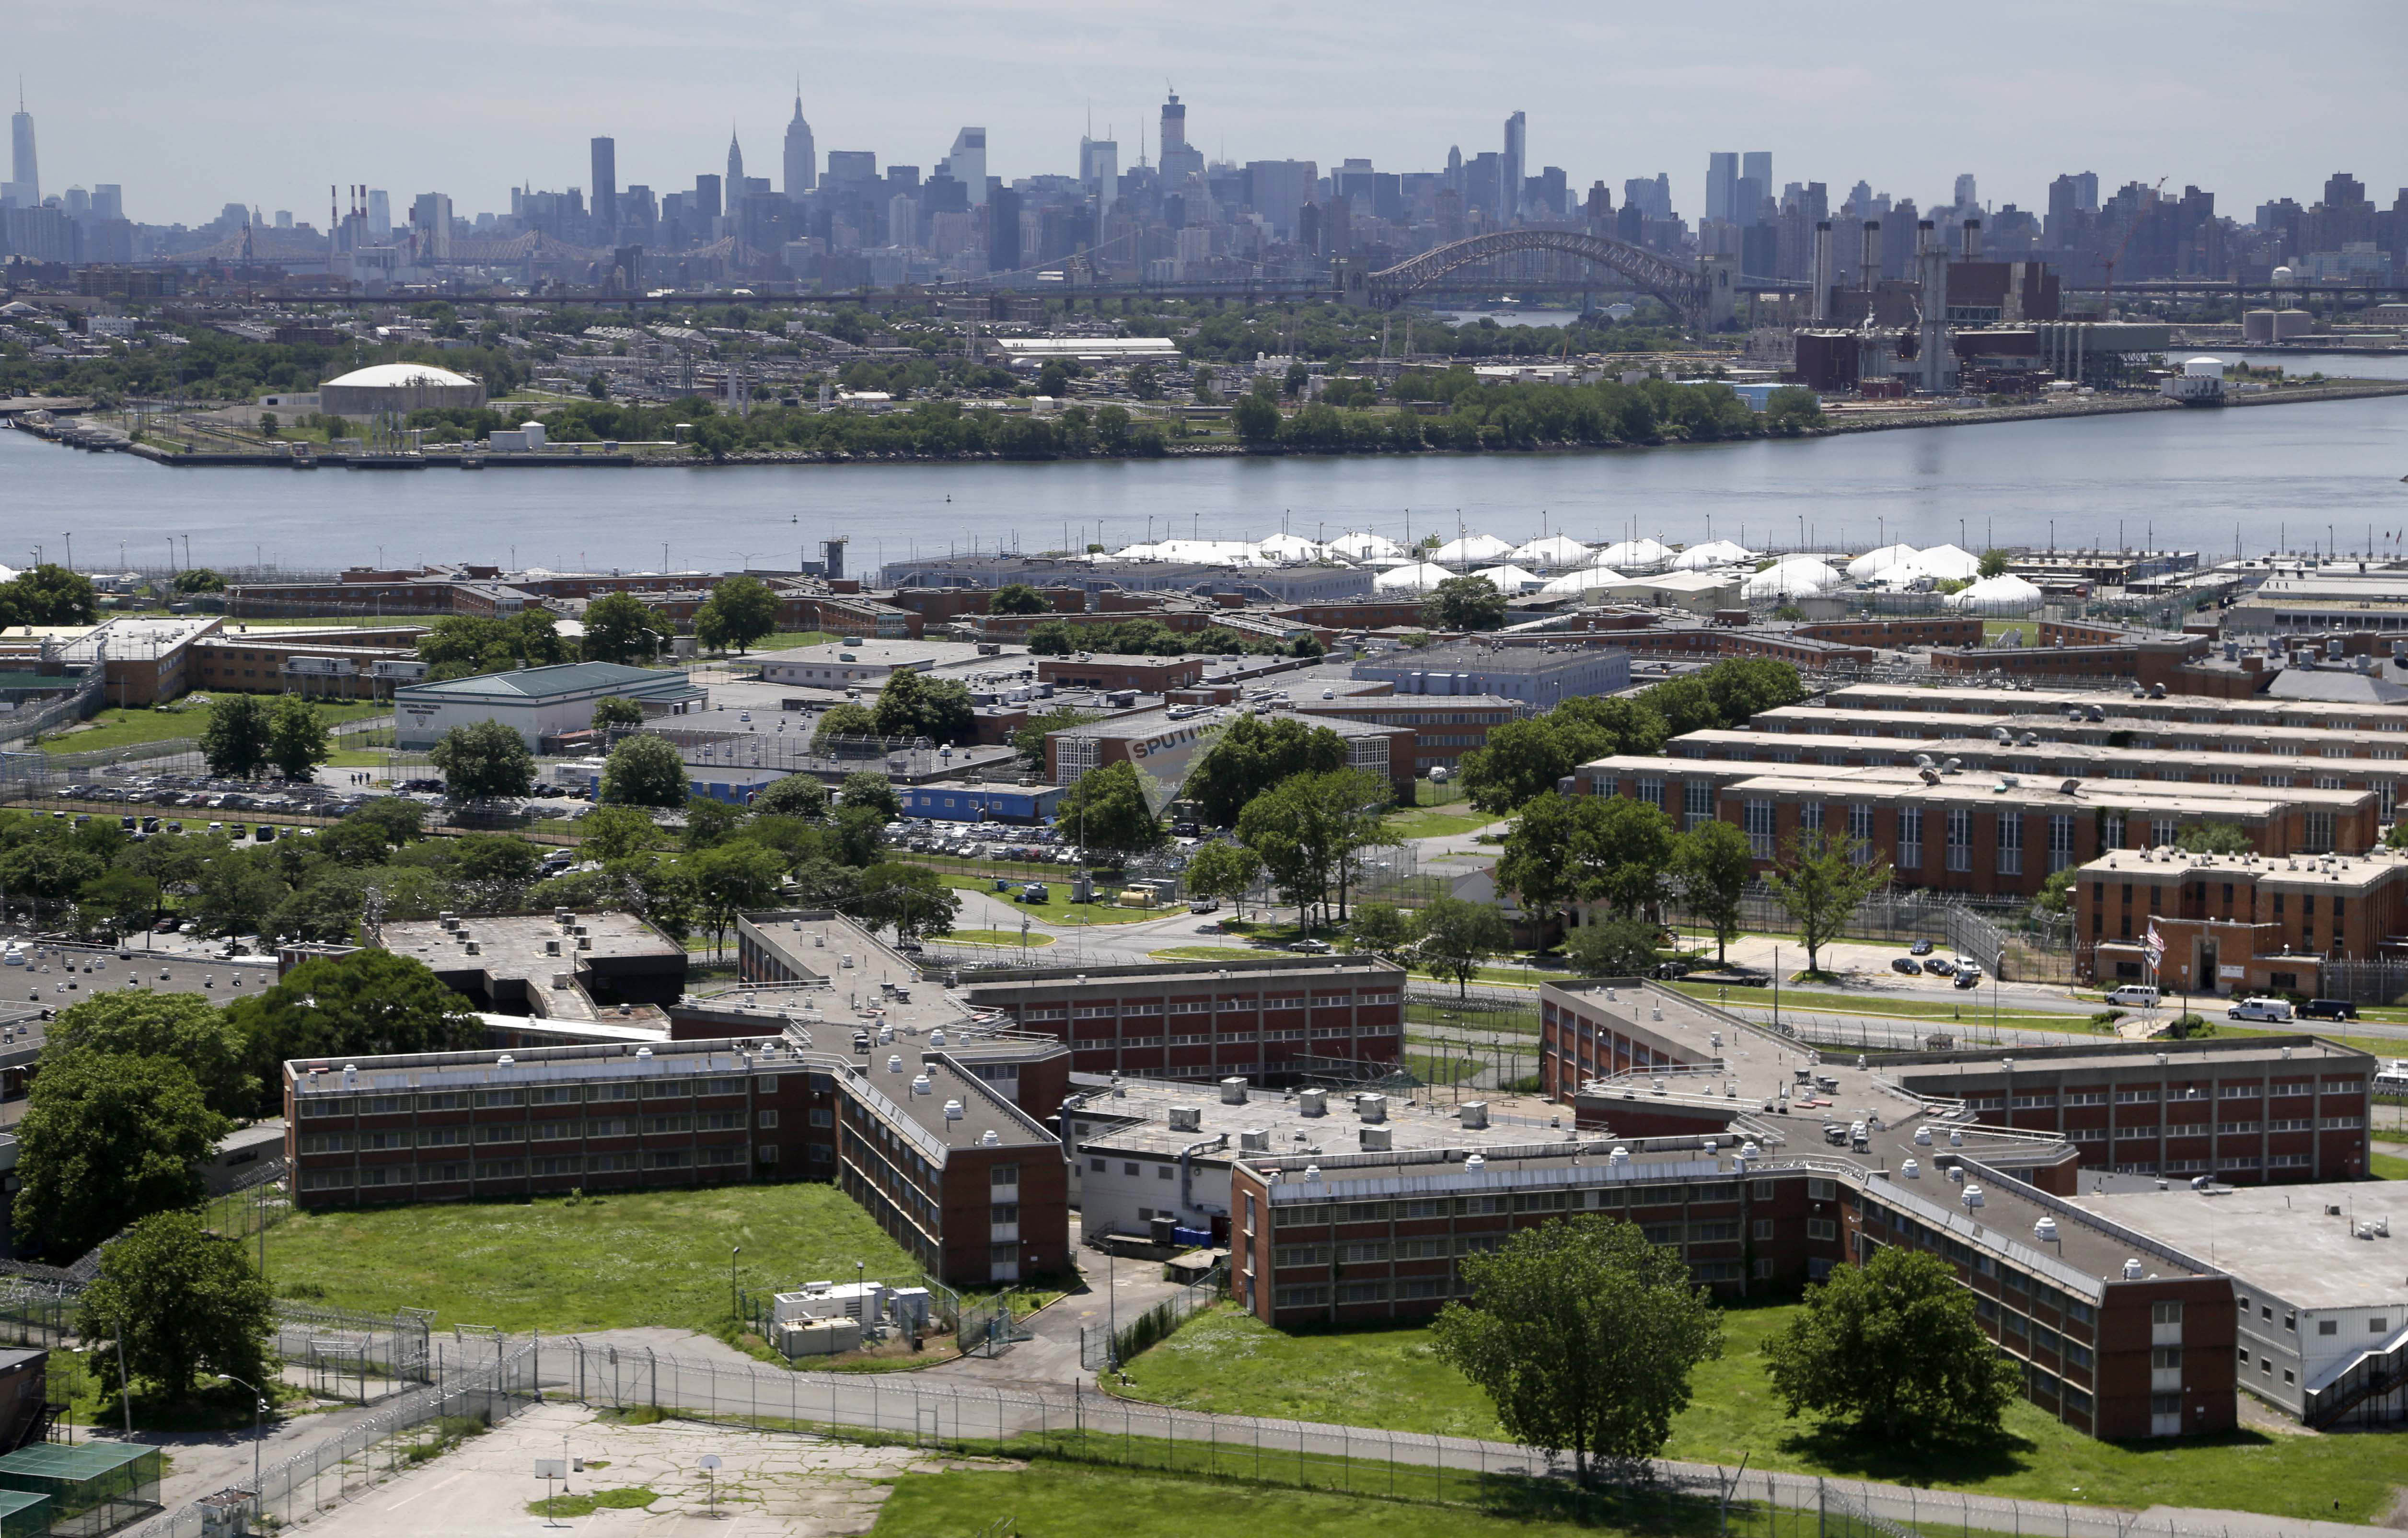 Rikers Island jail complex stands in the foreground with the New York skyline in the background. (File)